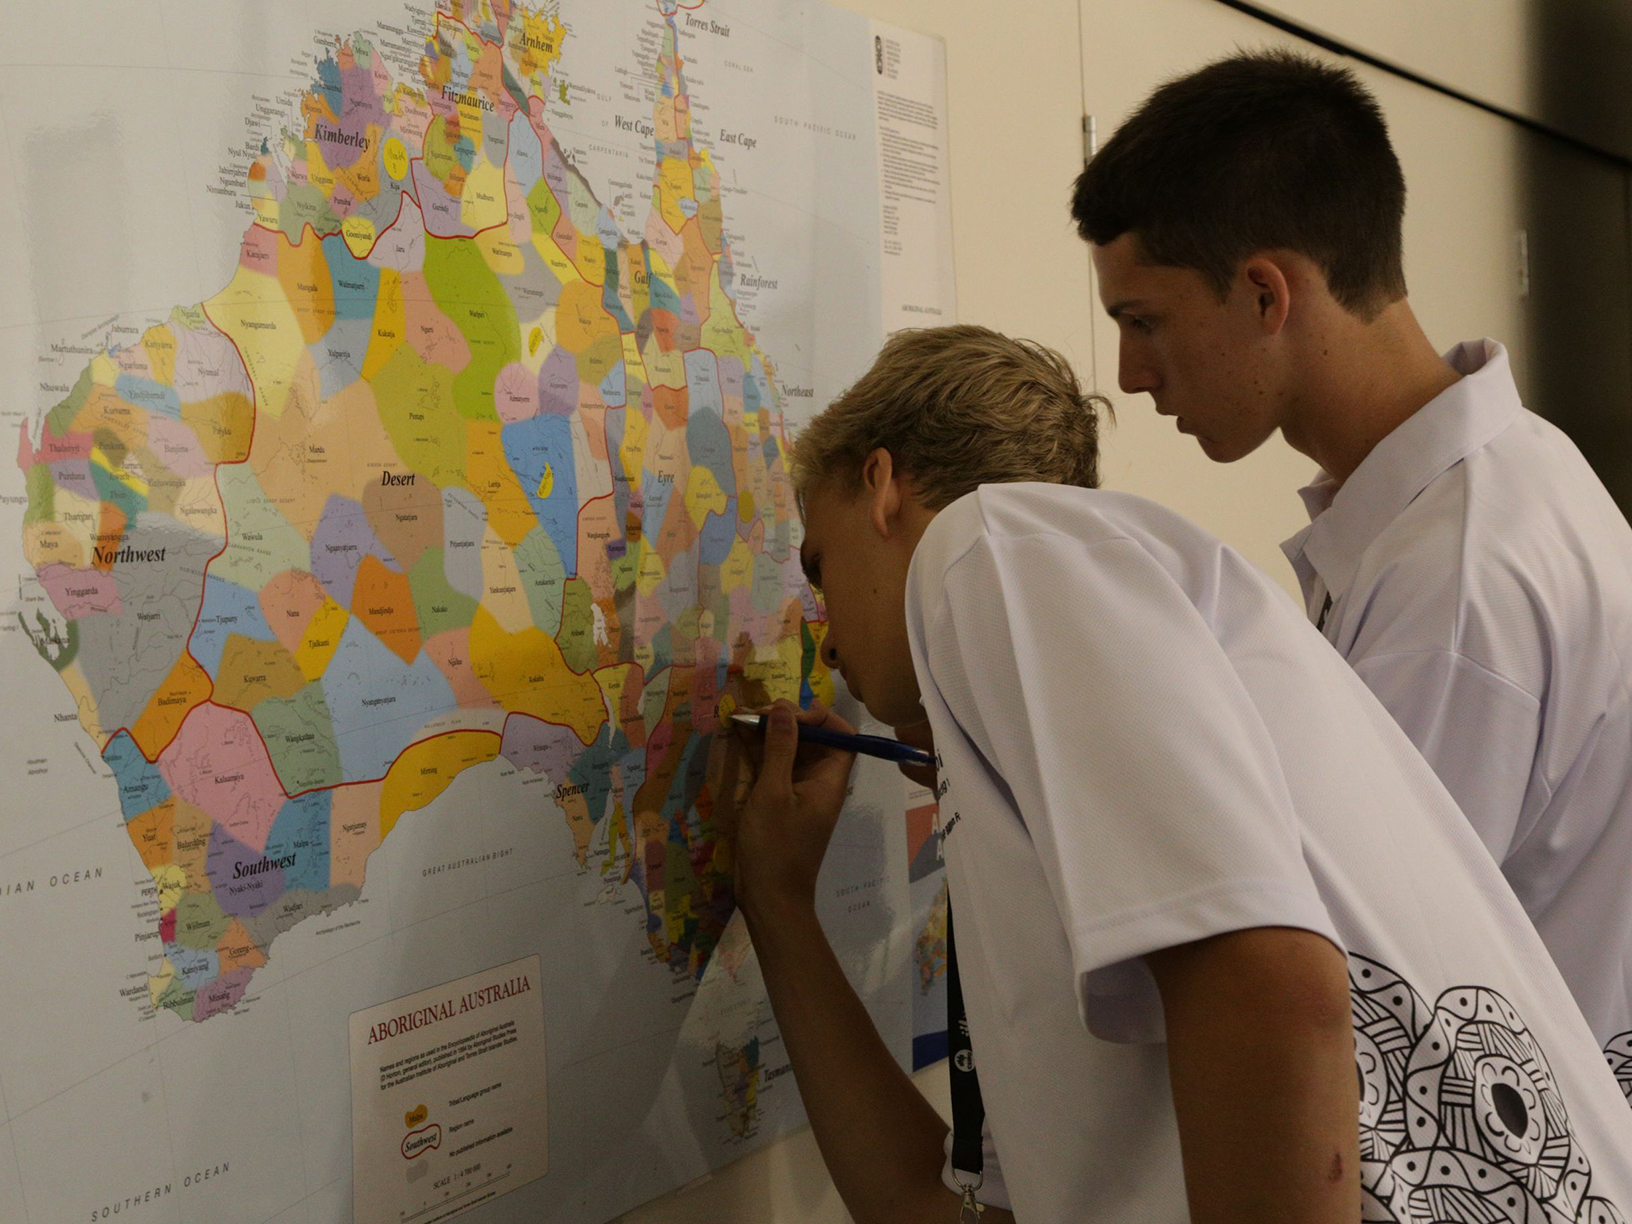 Two students mark on the map where they are from